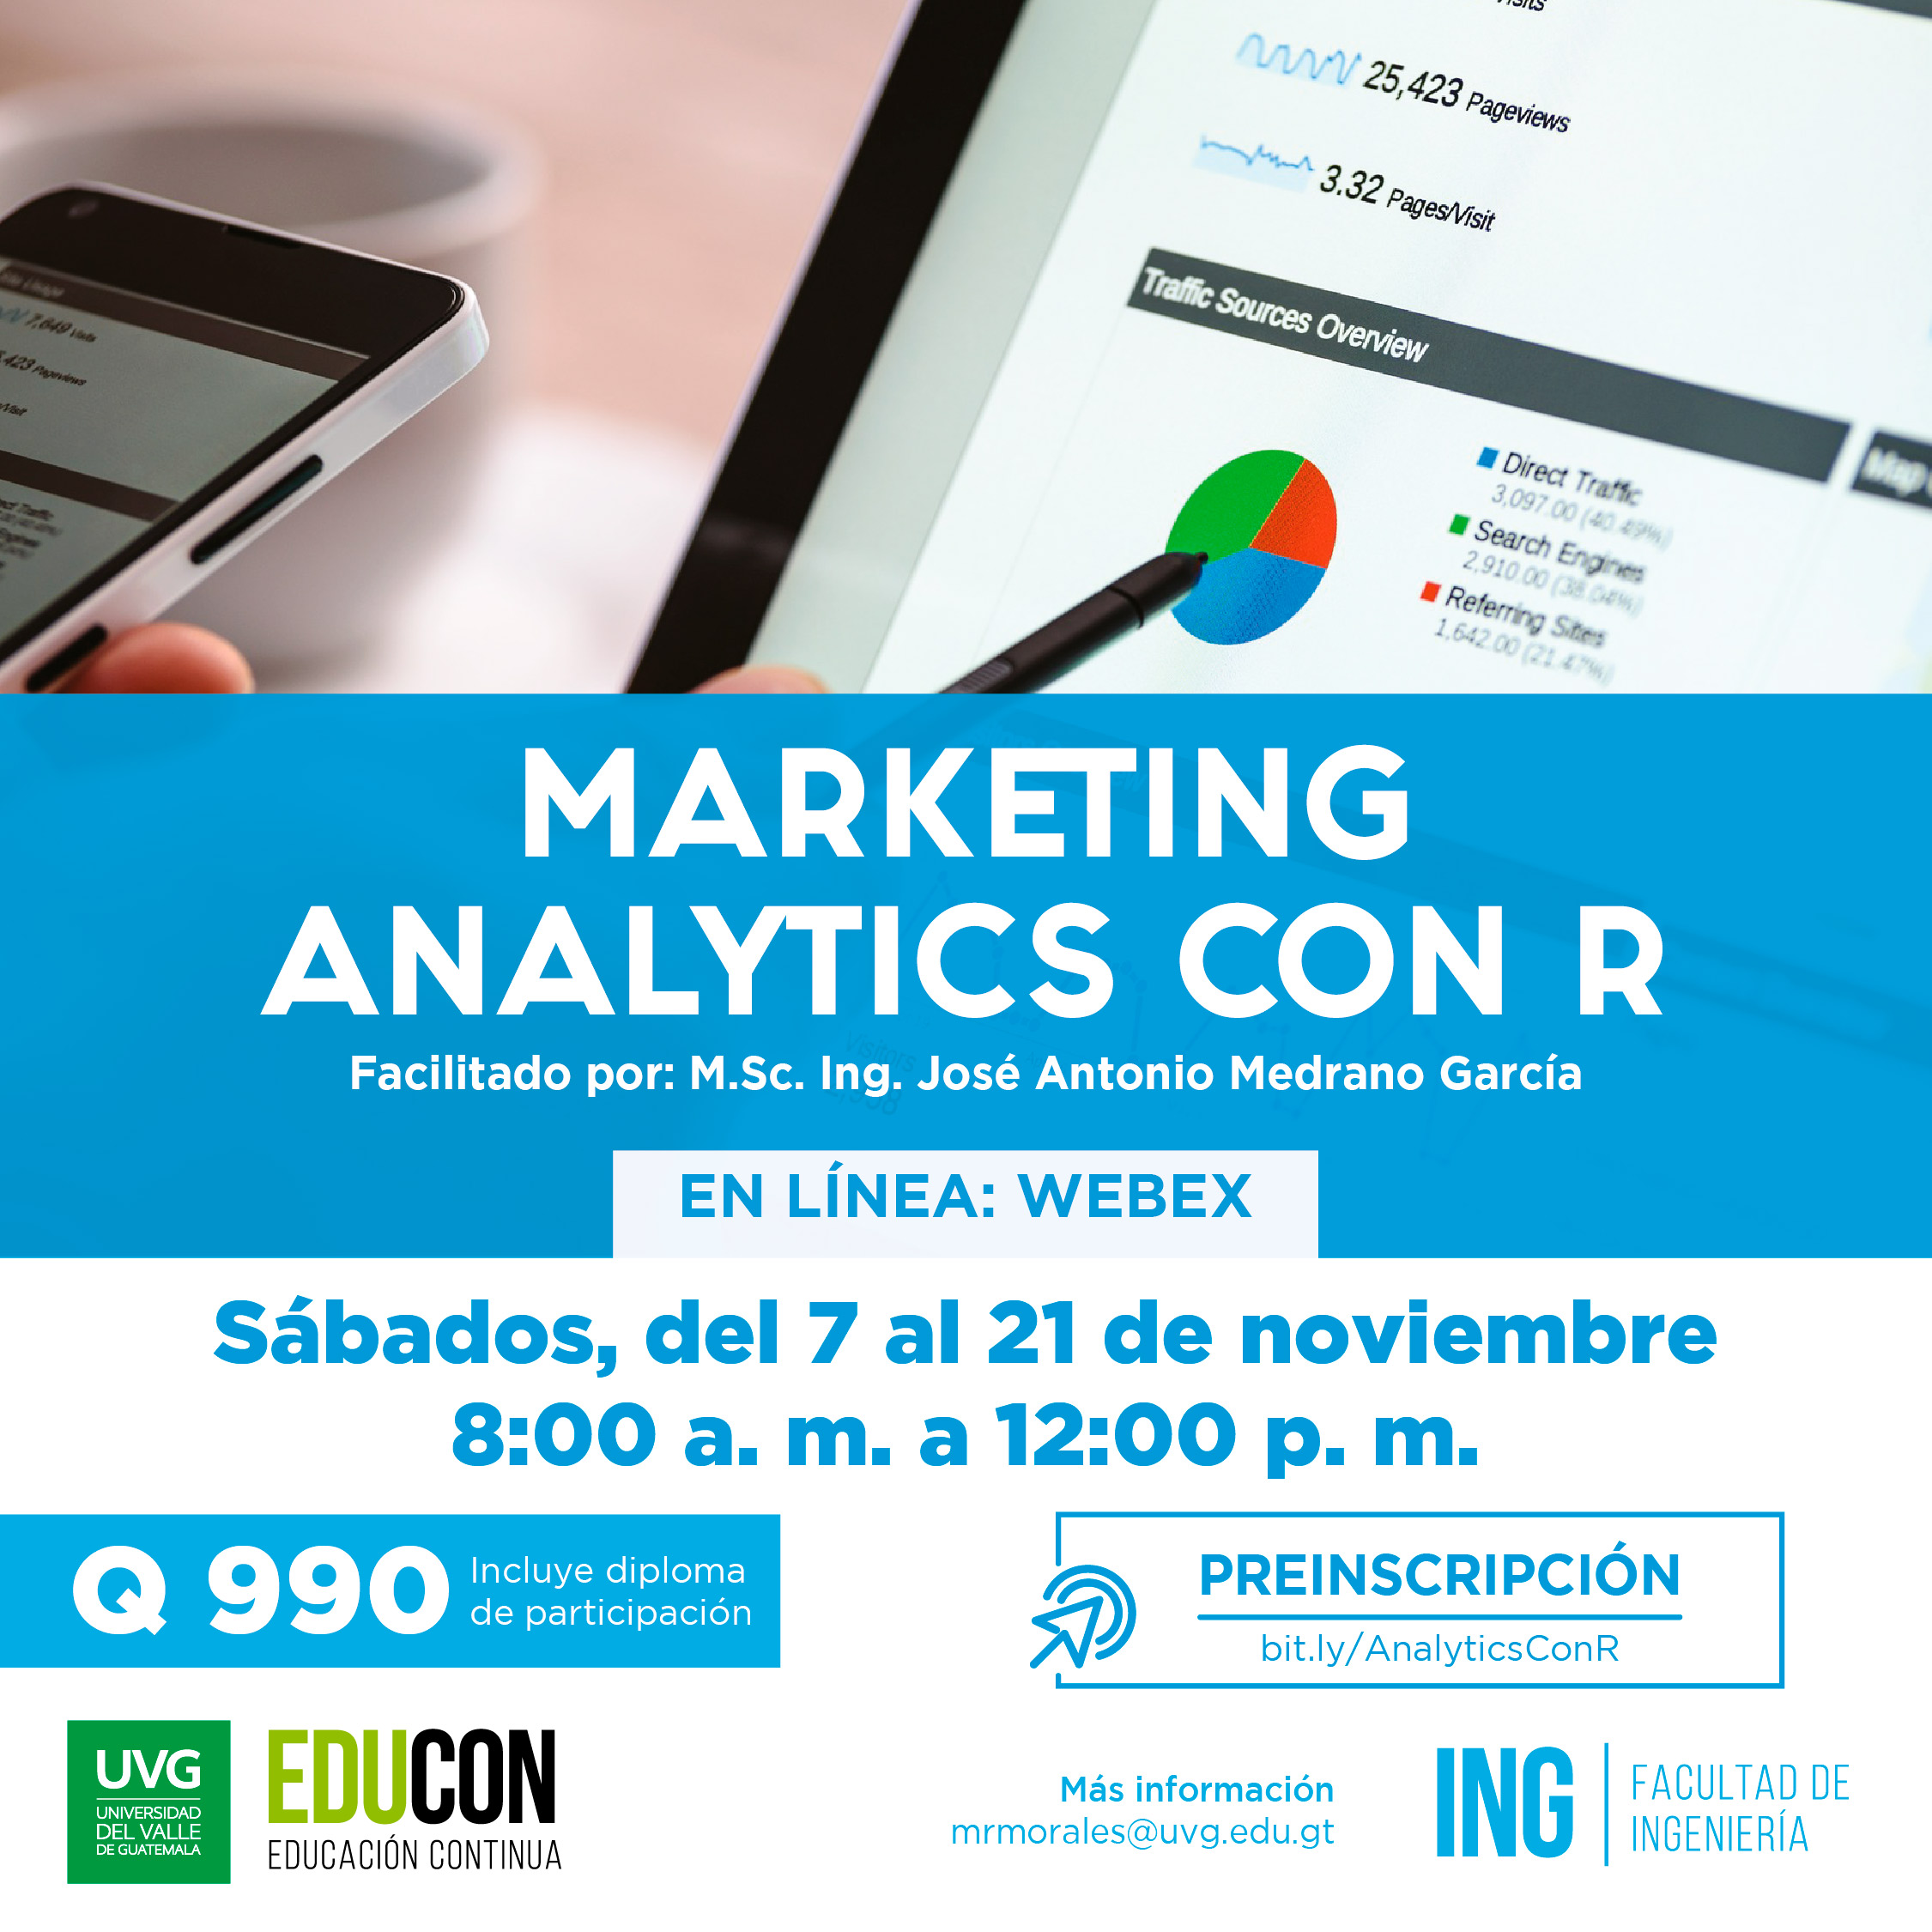 MARKETING ANALYTICS CON R